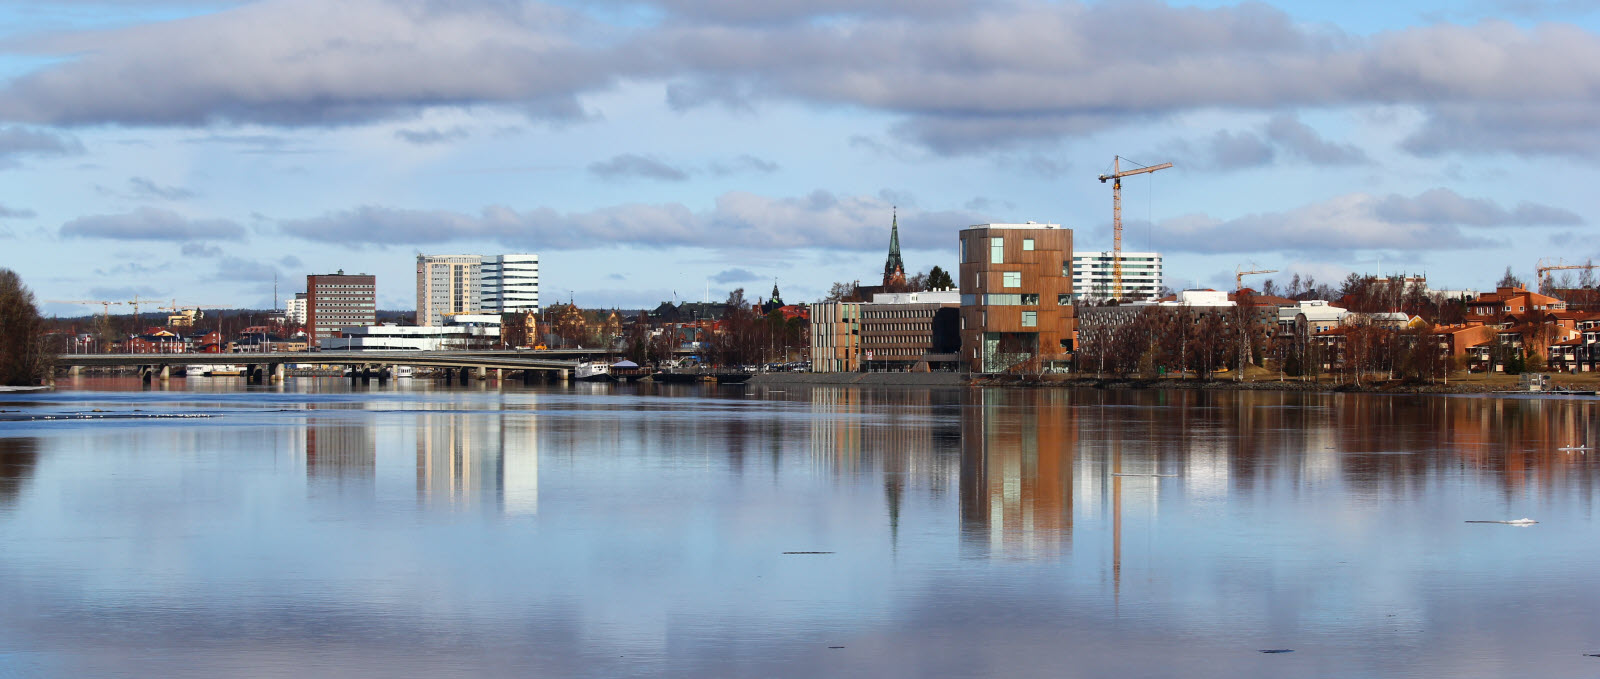 sweden-umea-spring-morning.jpg